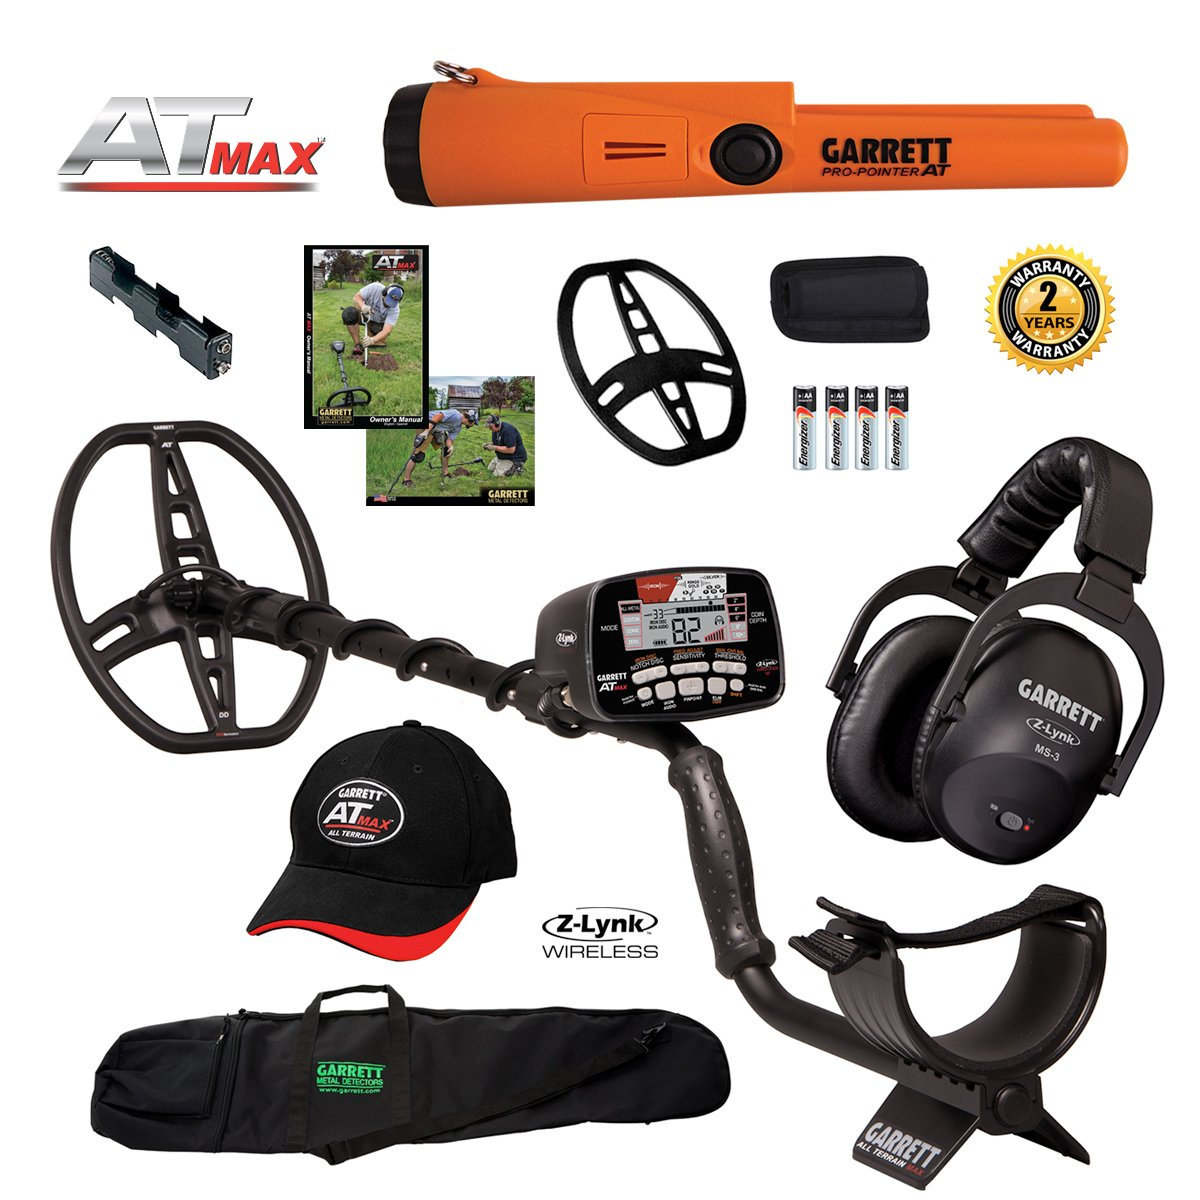 Garrett AT MAX Metal Detector with MS-3, Pro-Pointer AT, Carry Bag & More